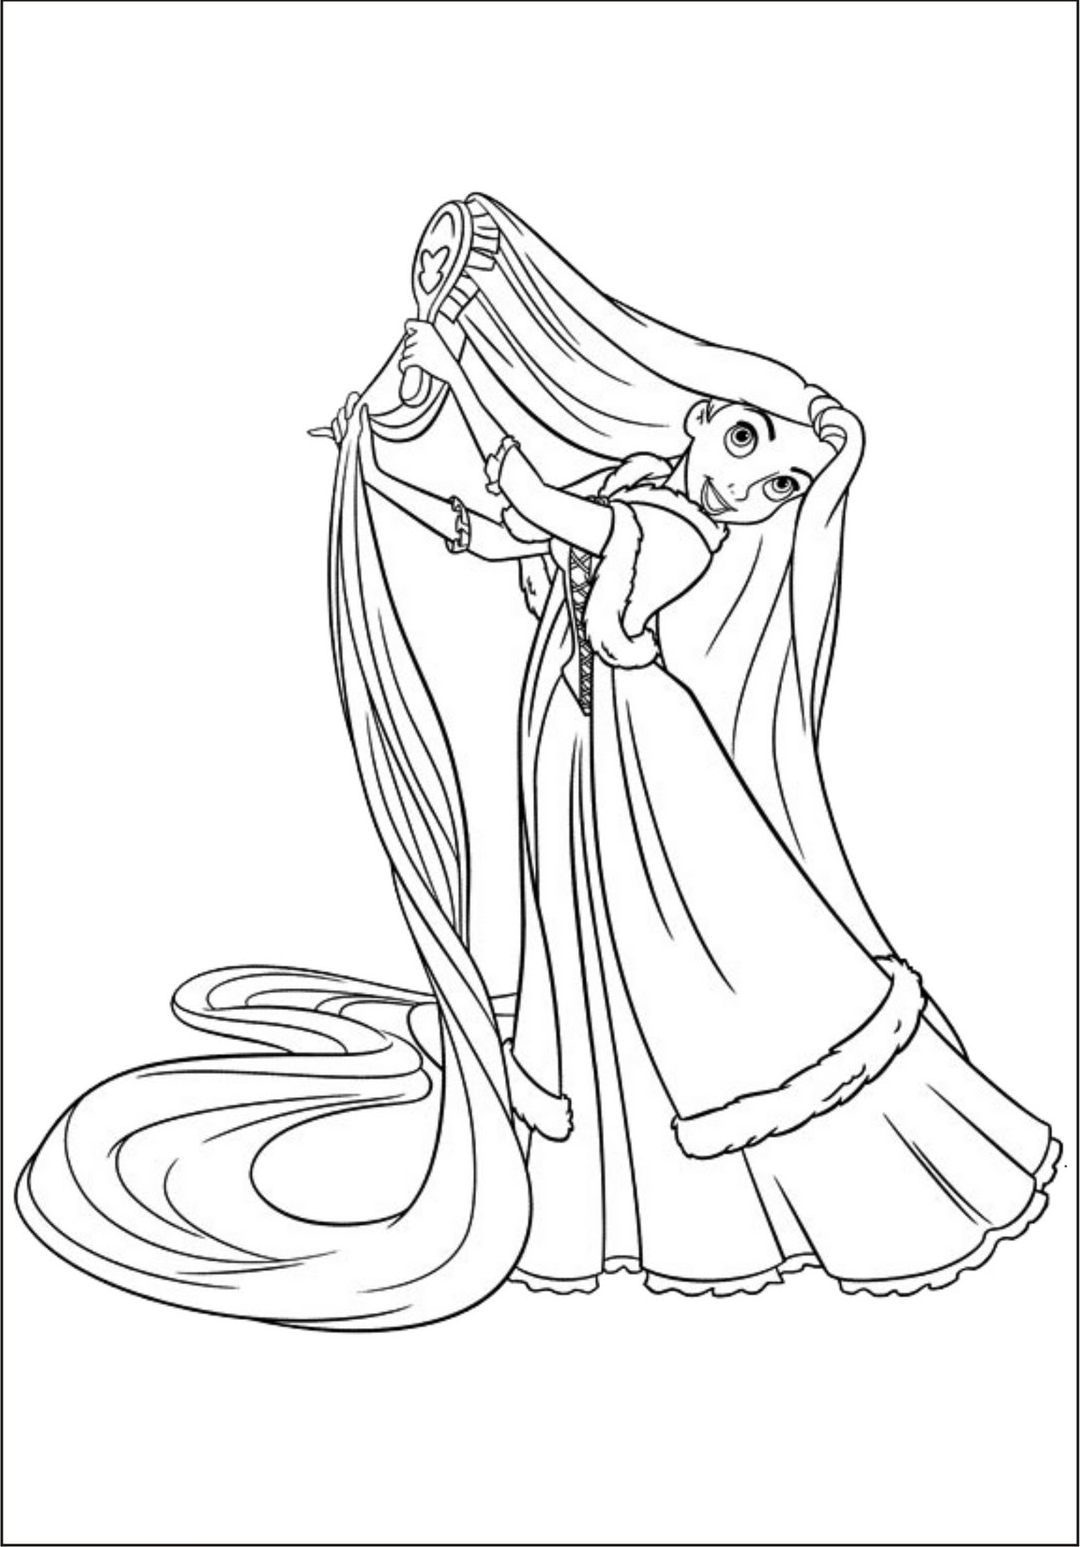 Brinquedos de papel princesa rapunzel para colorir for Disney tangled coloring pages